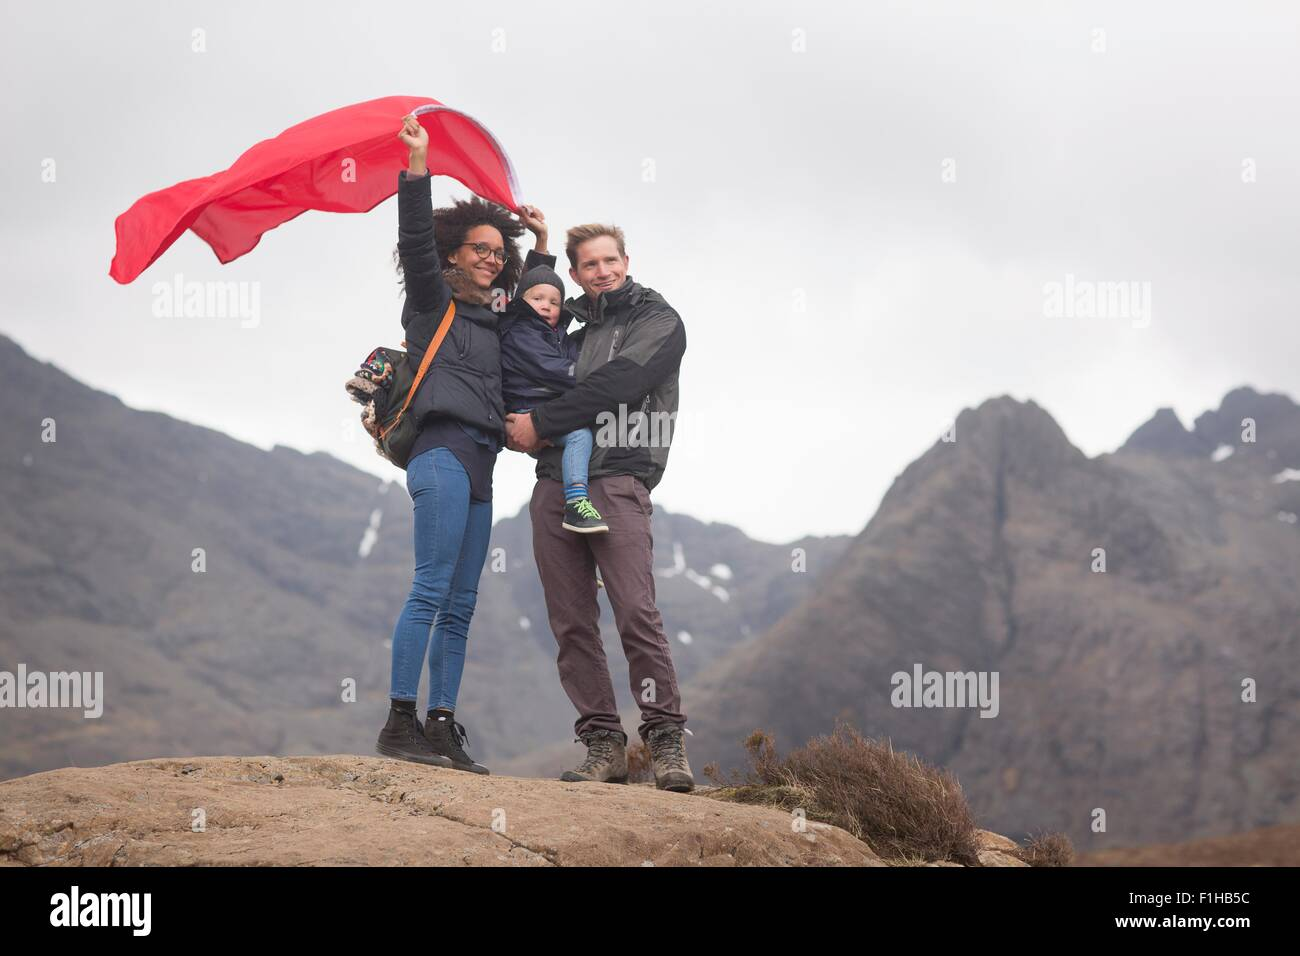 Family holding red flag in mountains, Fairy Pools, Isle of Skye, Hebrides, Scotland - Stock Image